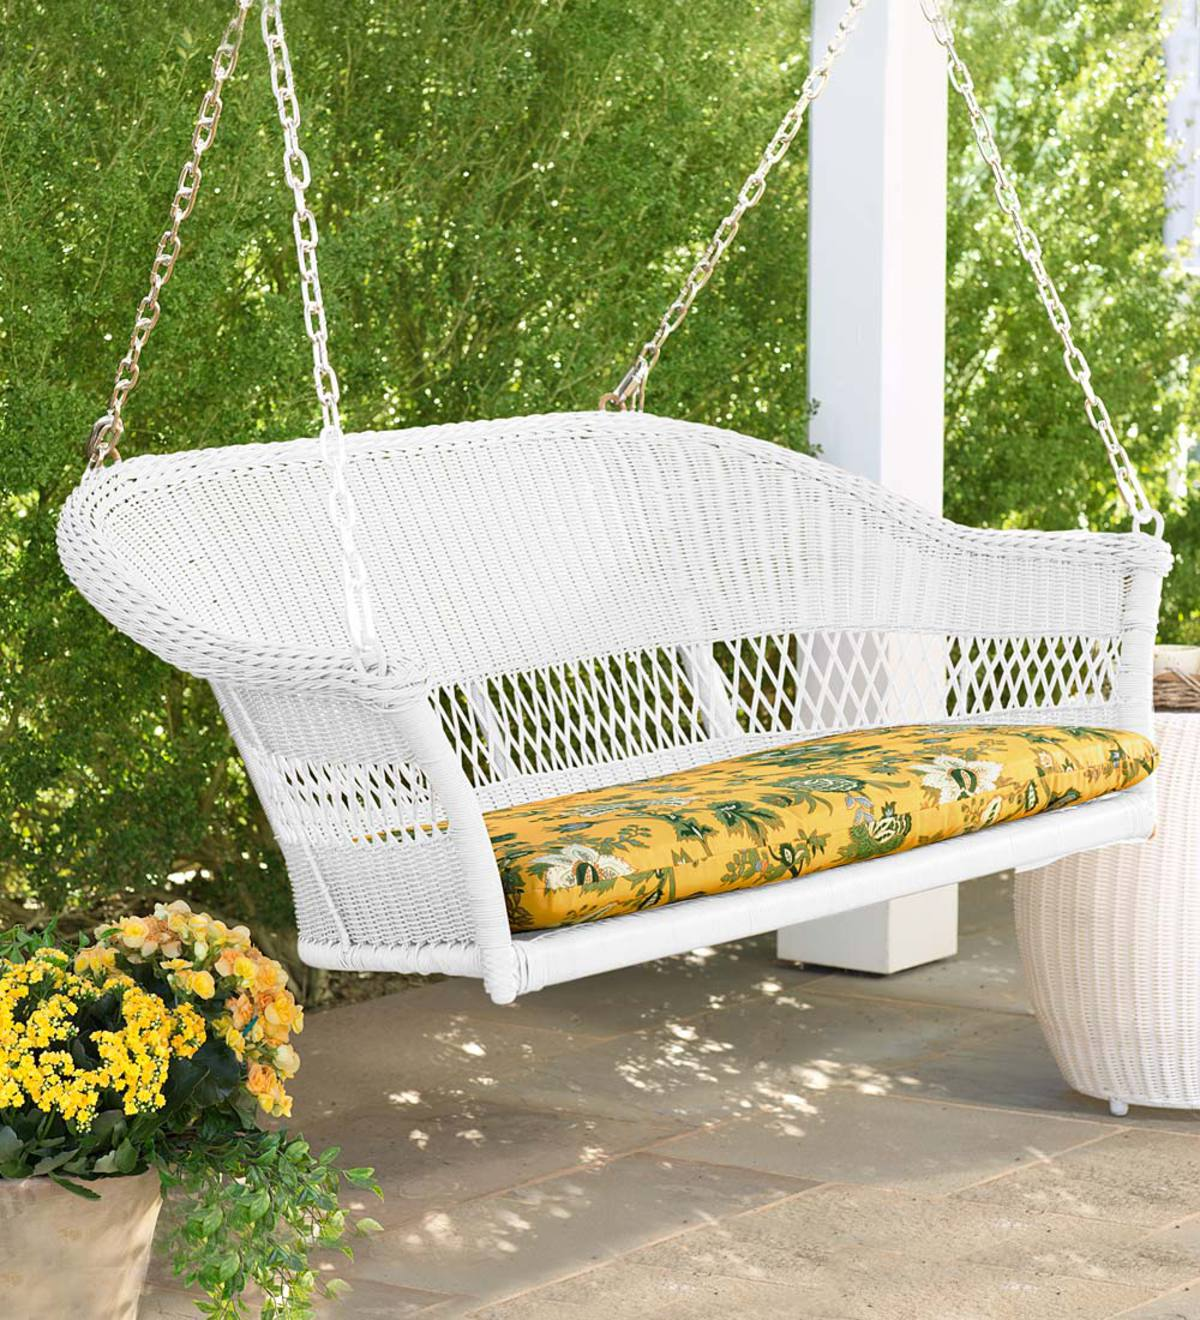 Easy Care Resin Wicker Swing - White